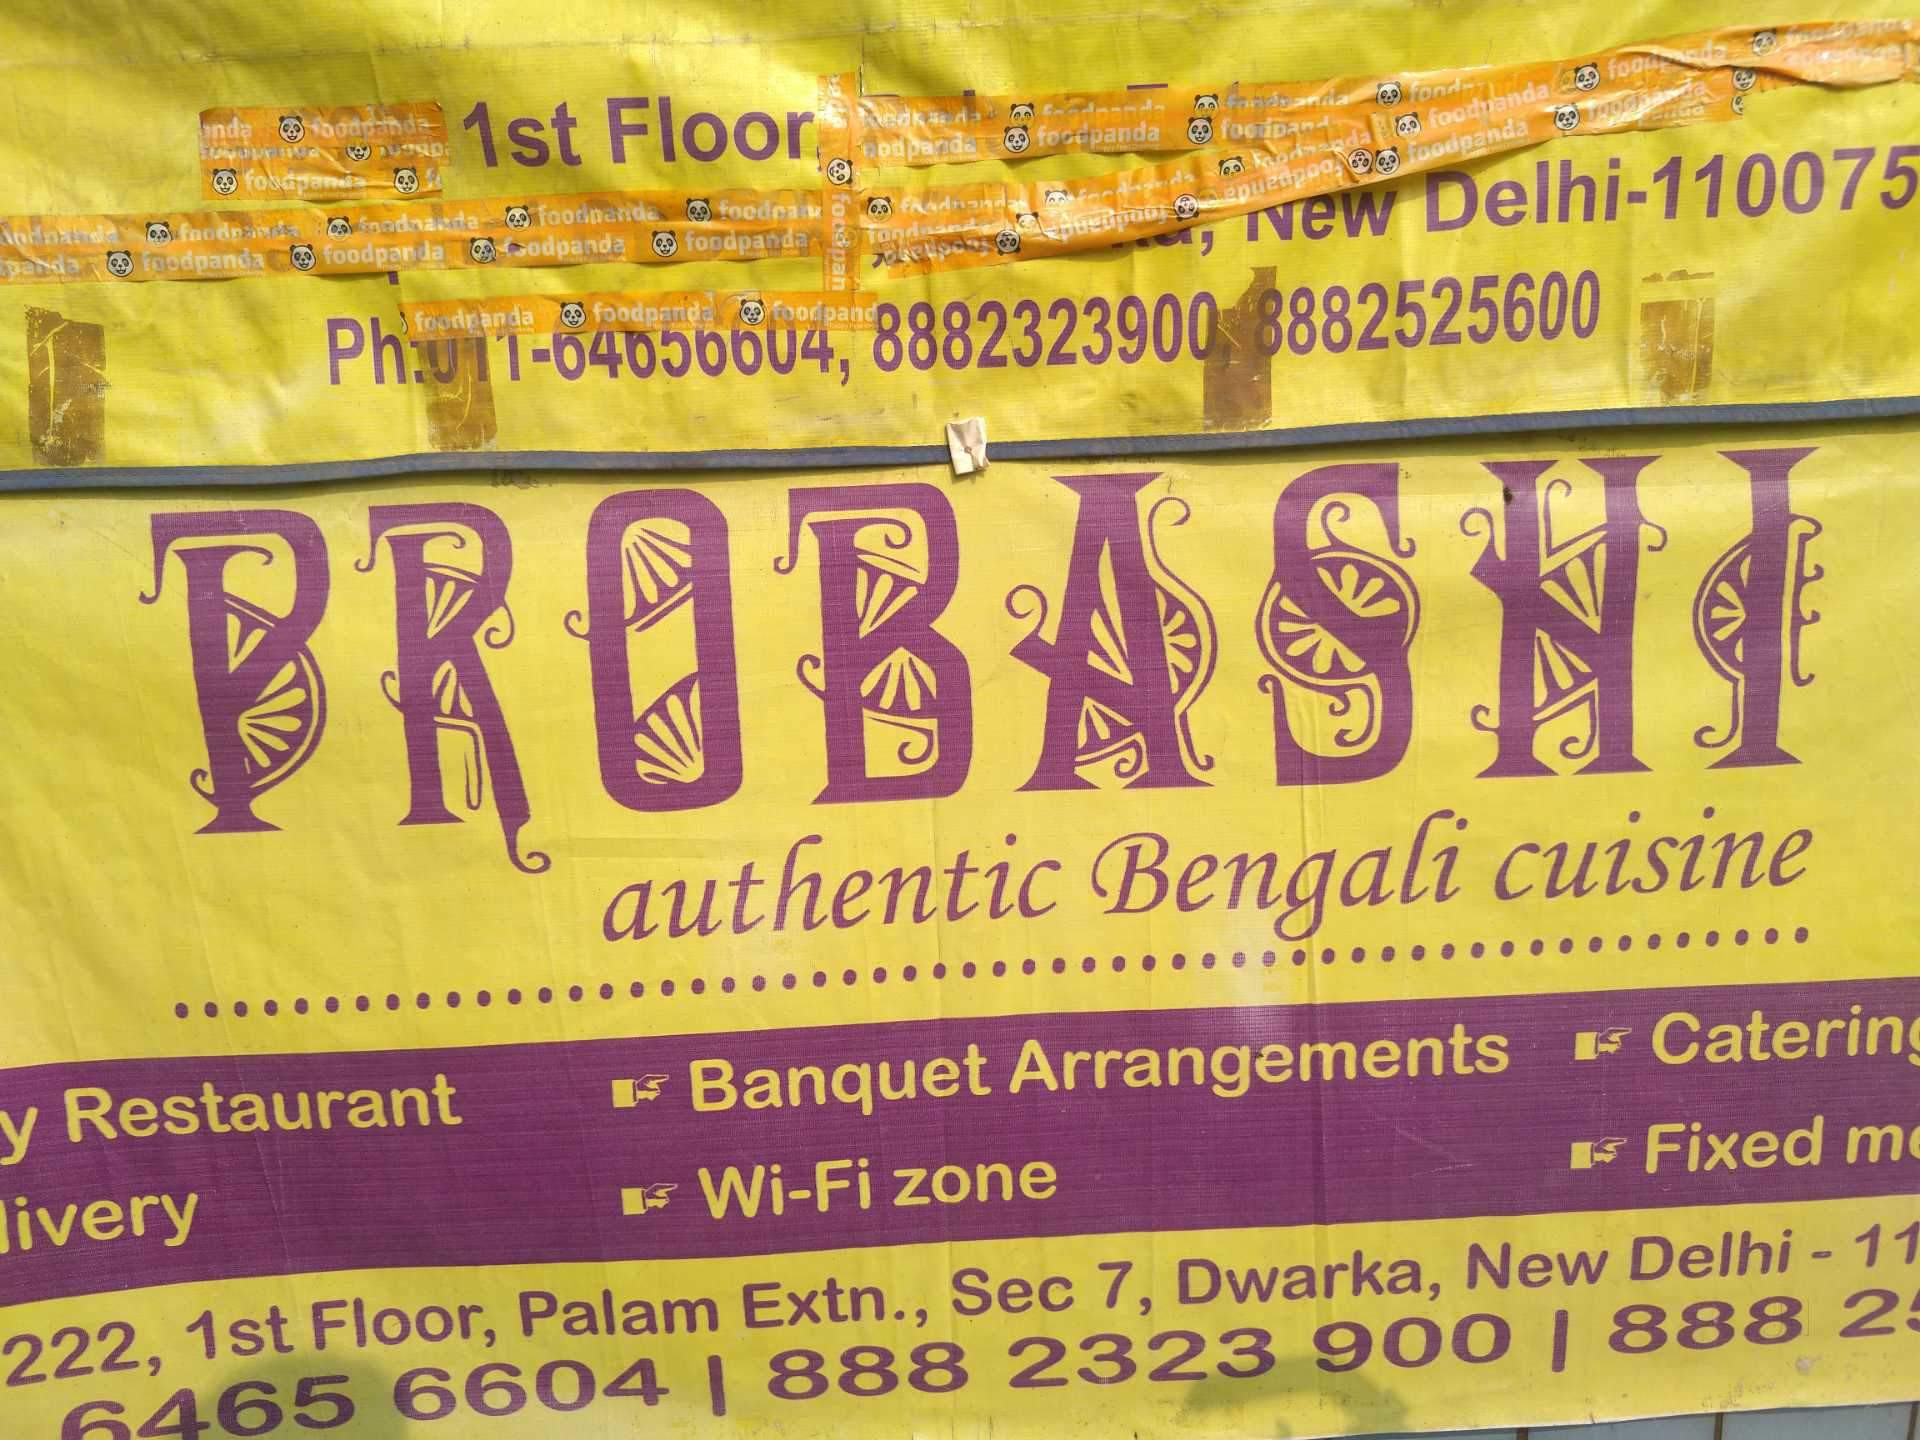 Wisconsin Employment Verification form Inspirational Courier Services Probashi Restaurant In Dwarka Sector 11